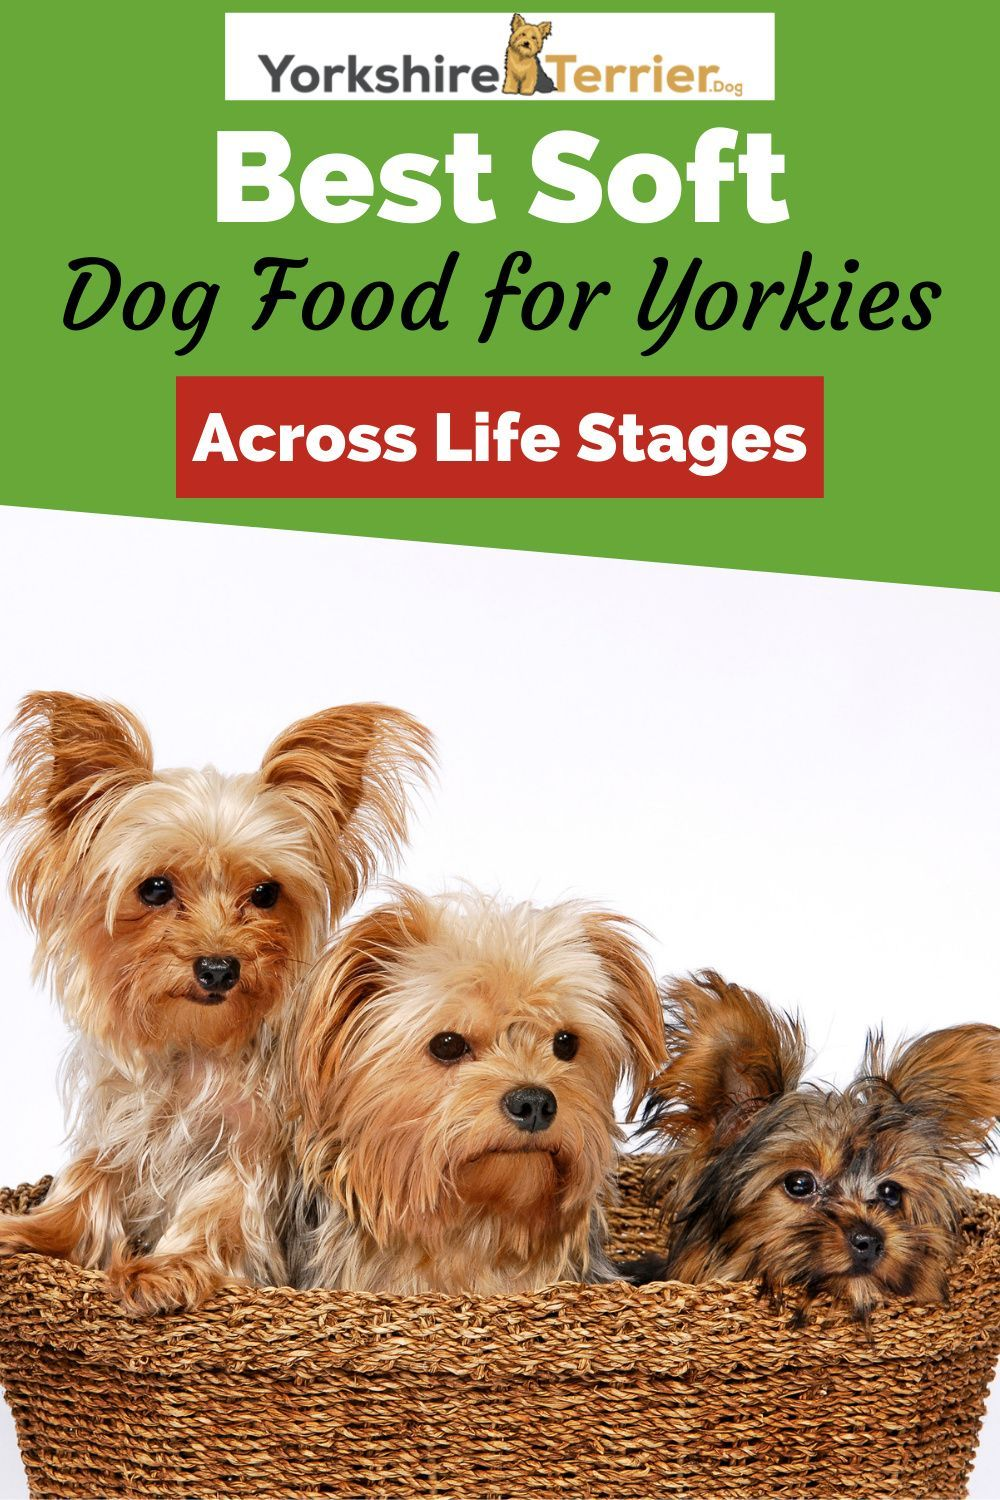 5 Best Soft Dog Food For Yorkies Across Life Stages Dog Food Recipes Best Dog Food Wet Dog Food